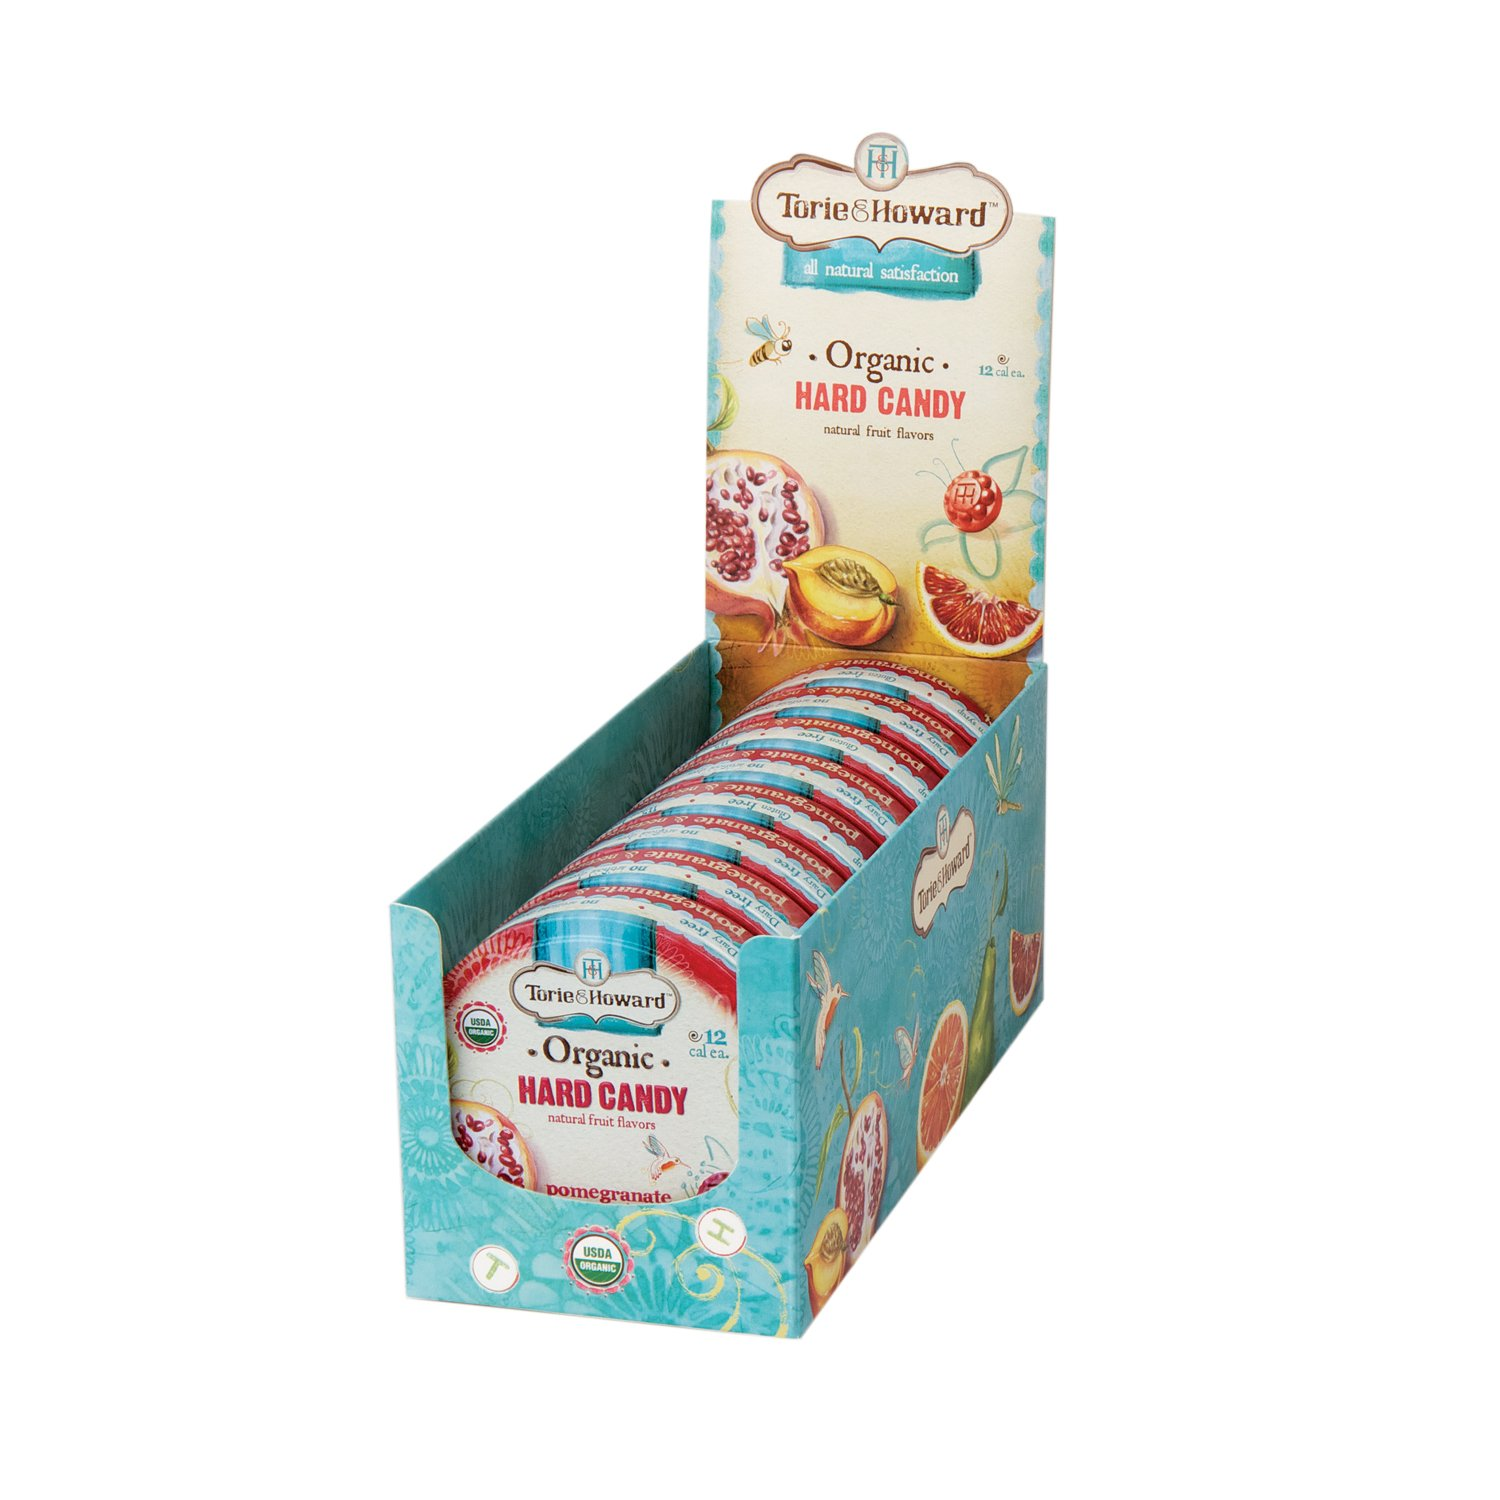 Torie & Howard Organic Hard Candy Pomegranate & Nectarine 2 oz tin (Pack of 8) by Torie & Howard (Image #2)